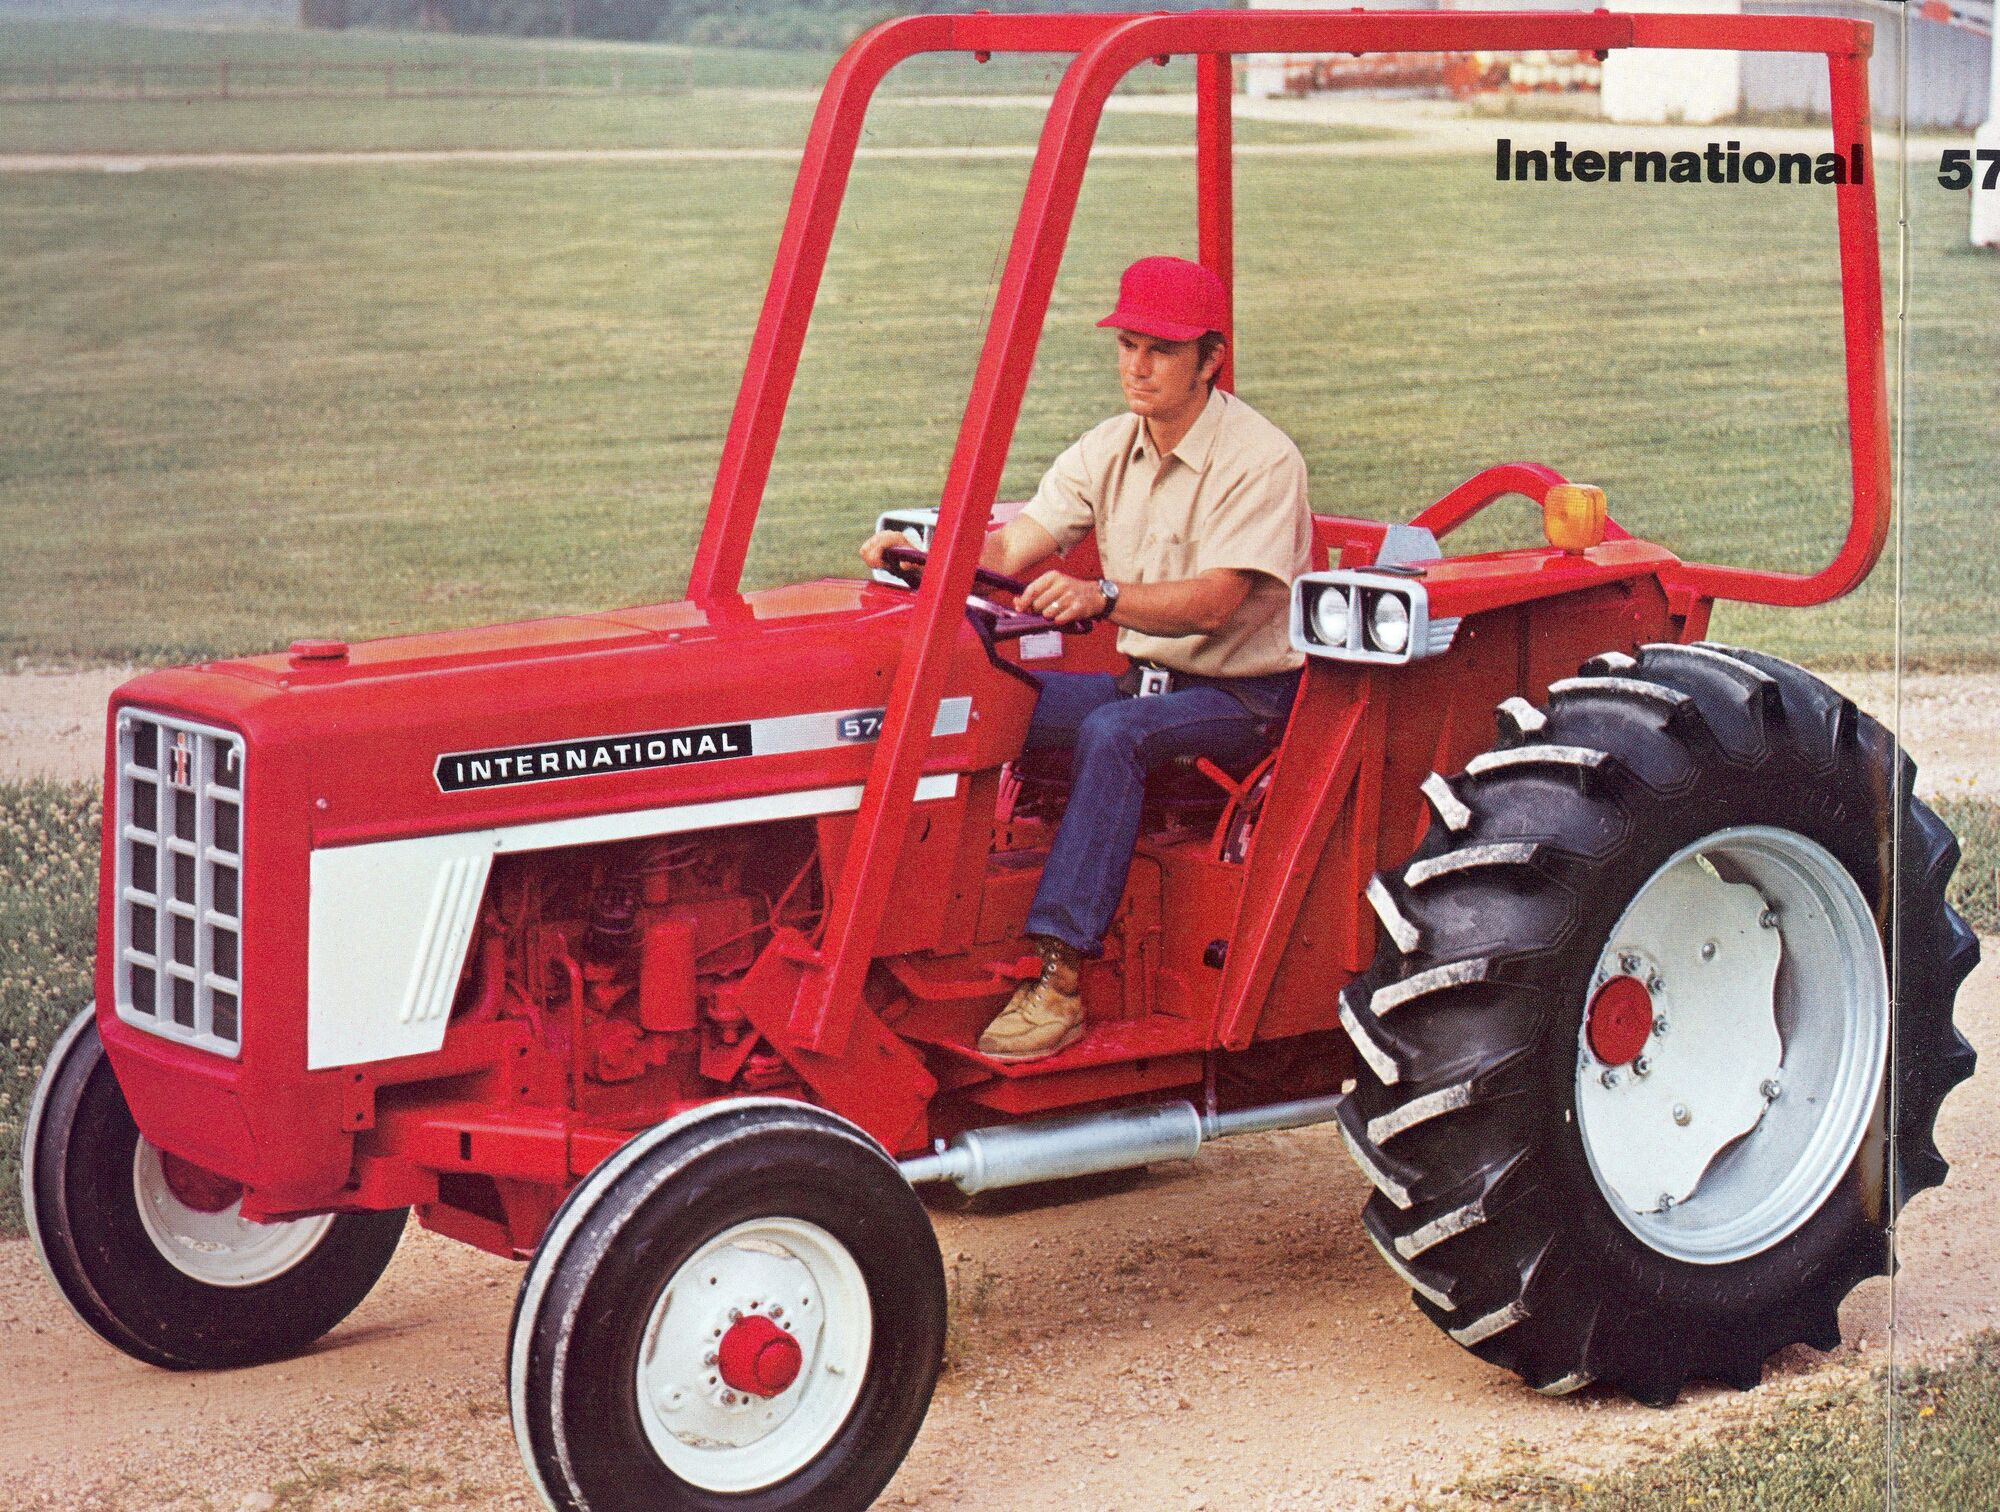 1970 574 International Tractors : International tractor construction plant wiki